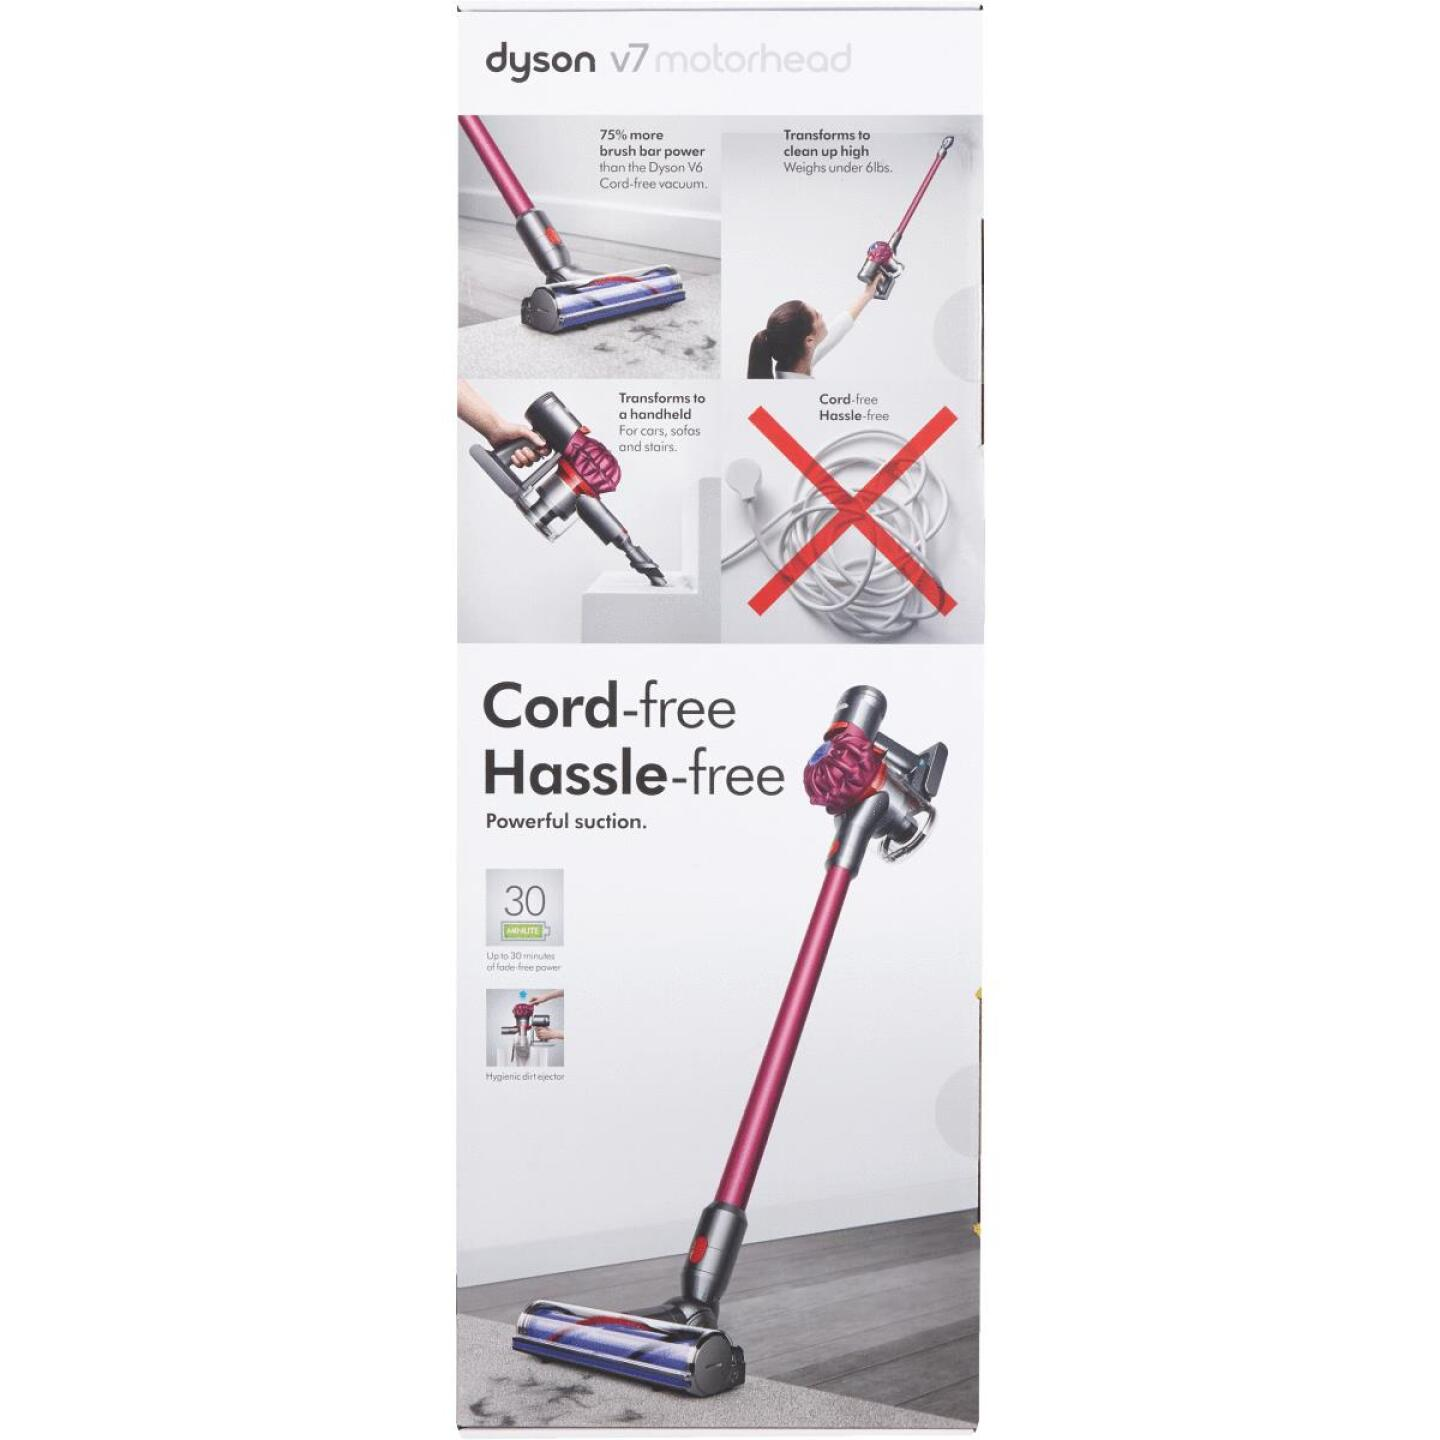 Dyson V7 Motorhead Cordless Bagless Stick Vacuum Cleaner Image 2